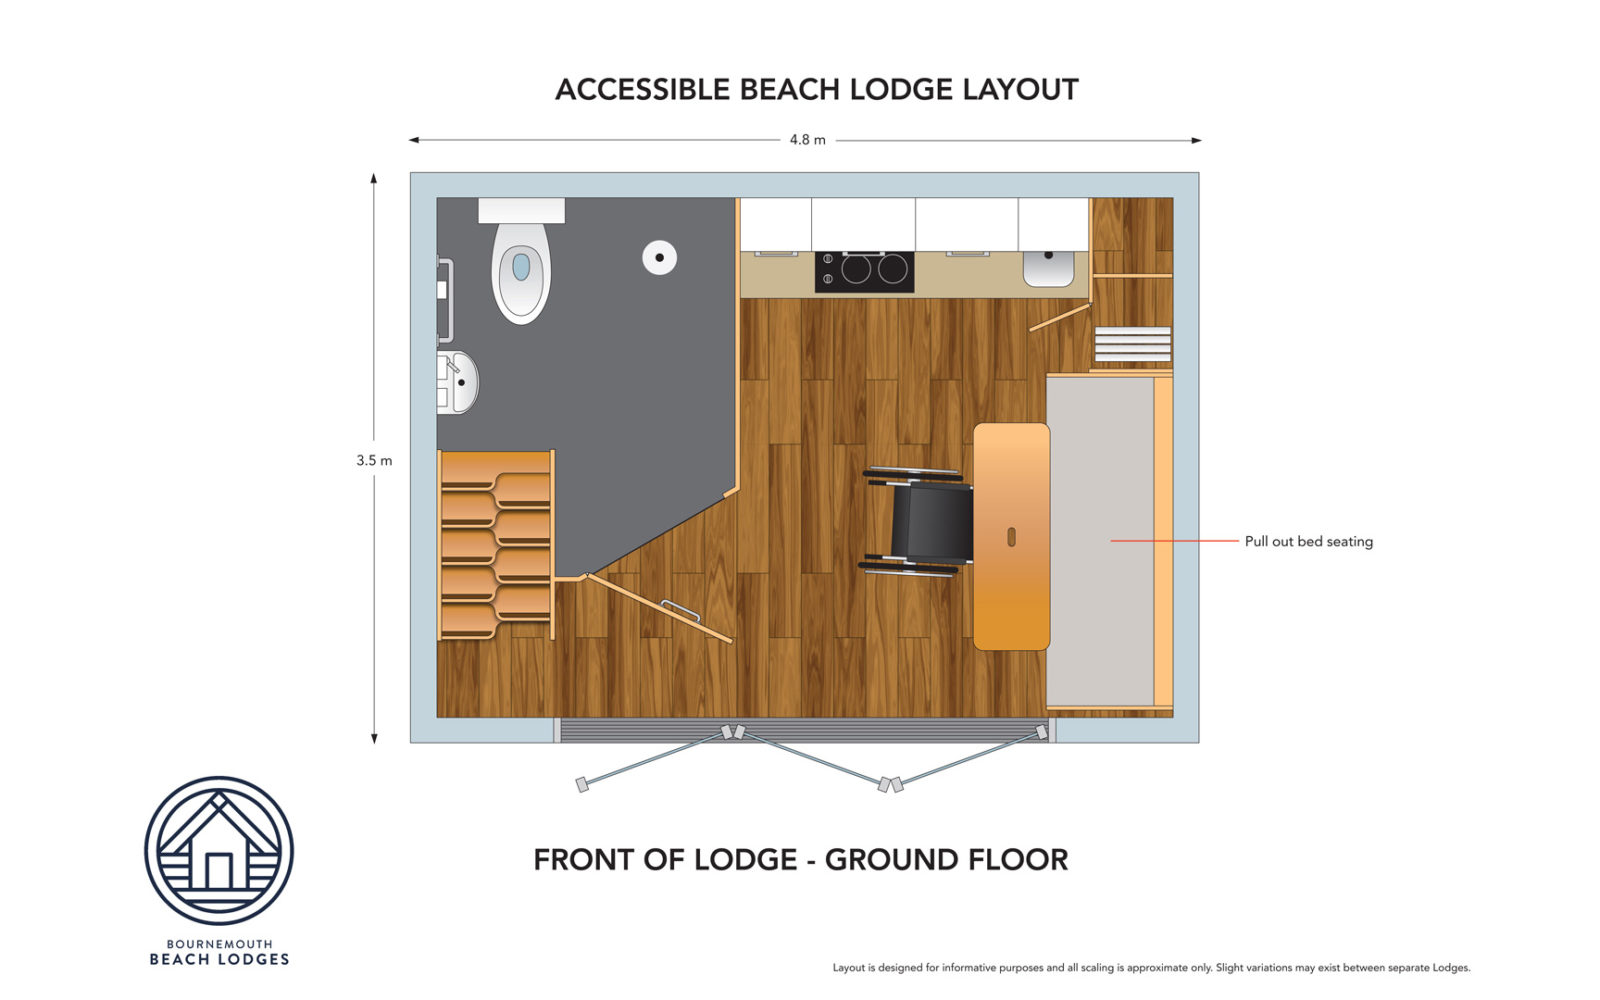 Ground floor plan from the inside of the accessible beach hut